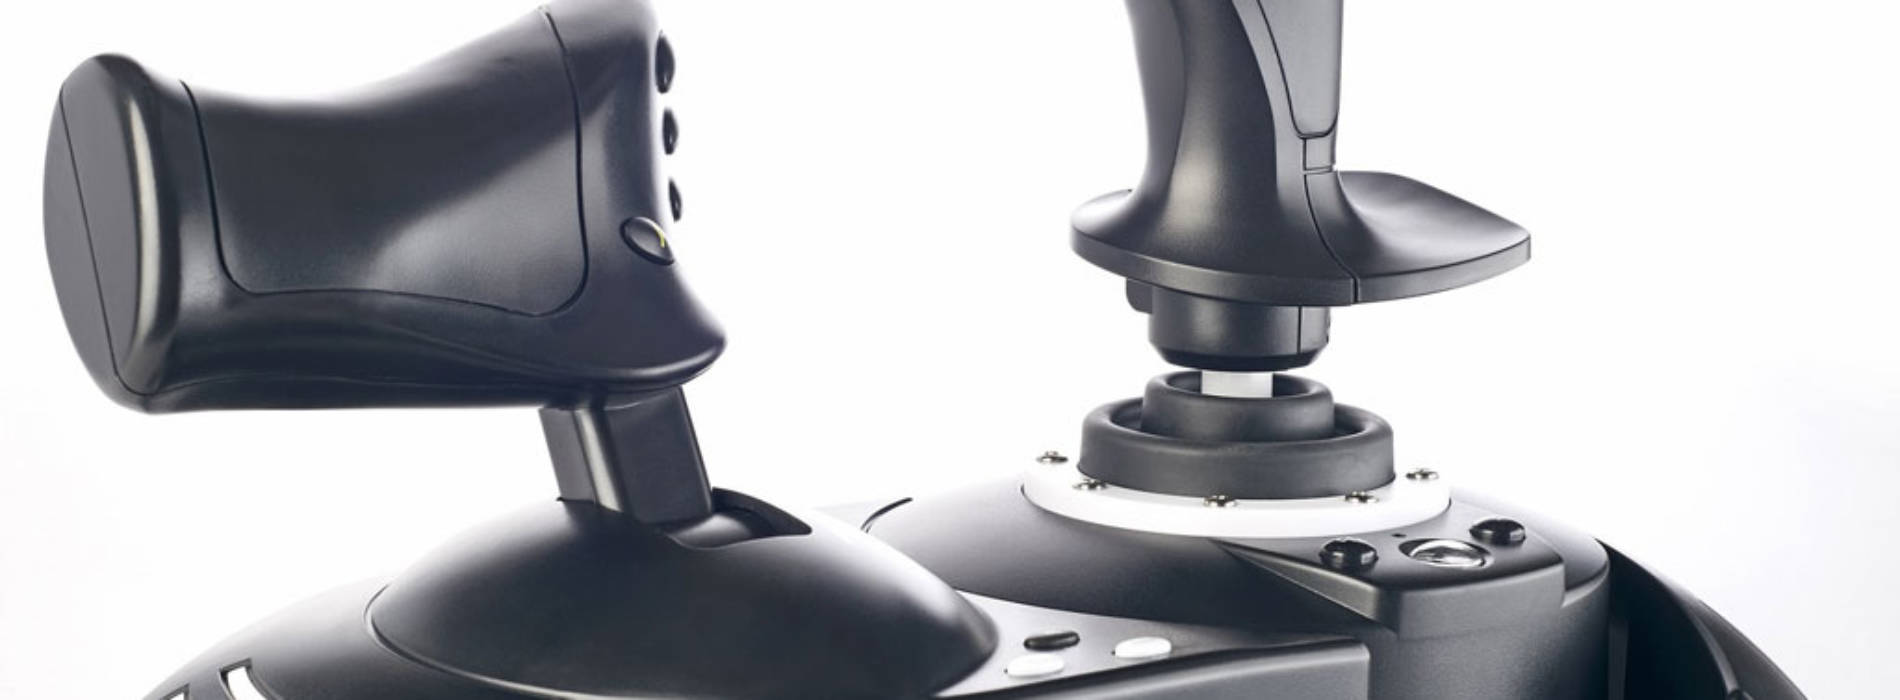 Concurso: Thrustmaster T.Flight Hotas One